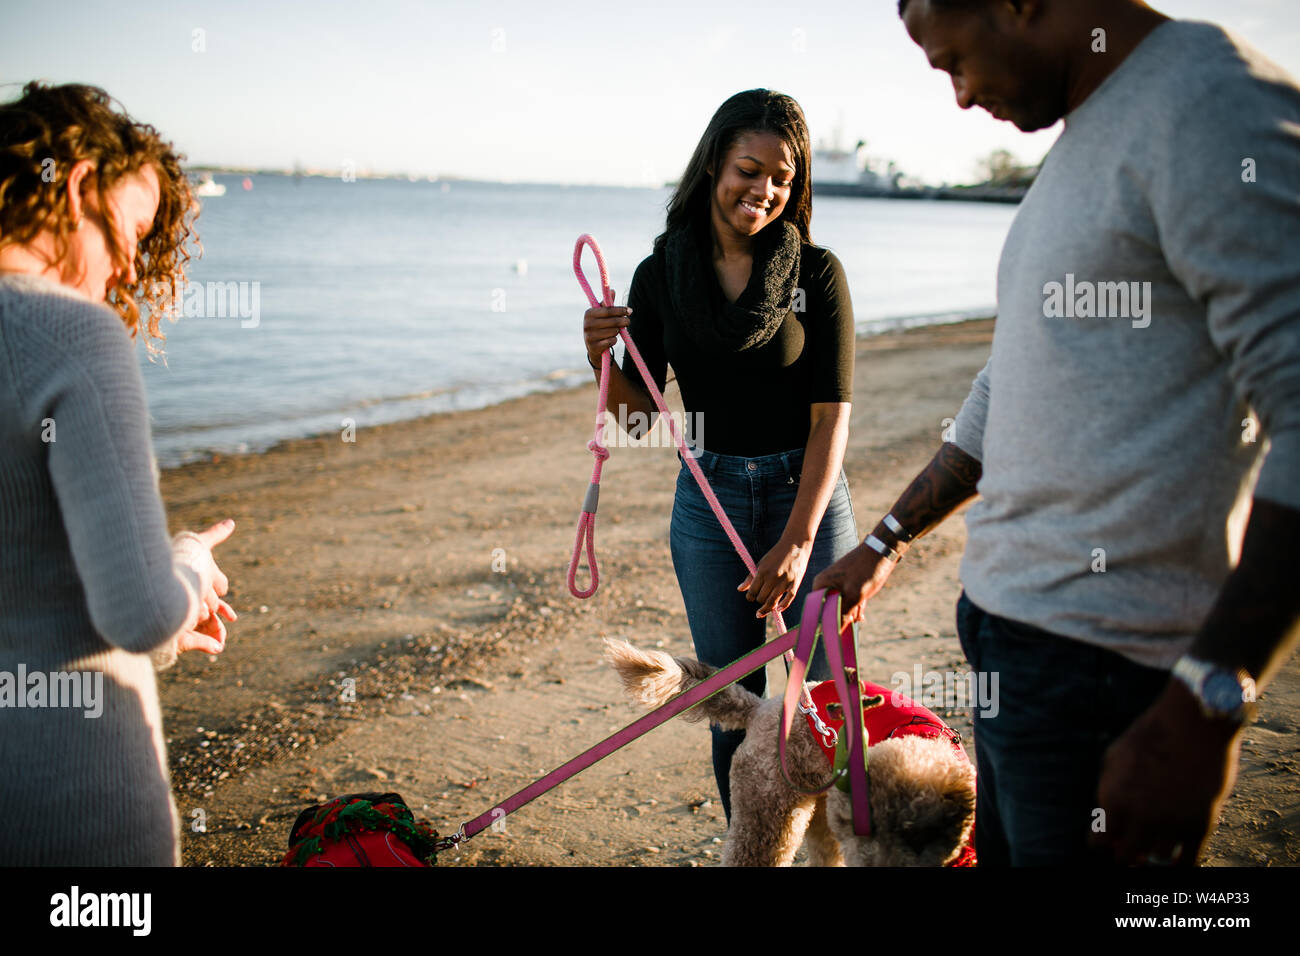 Blended family walking dogs on beach at sunset Stock Photo